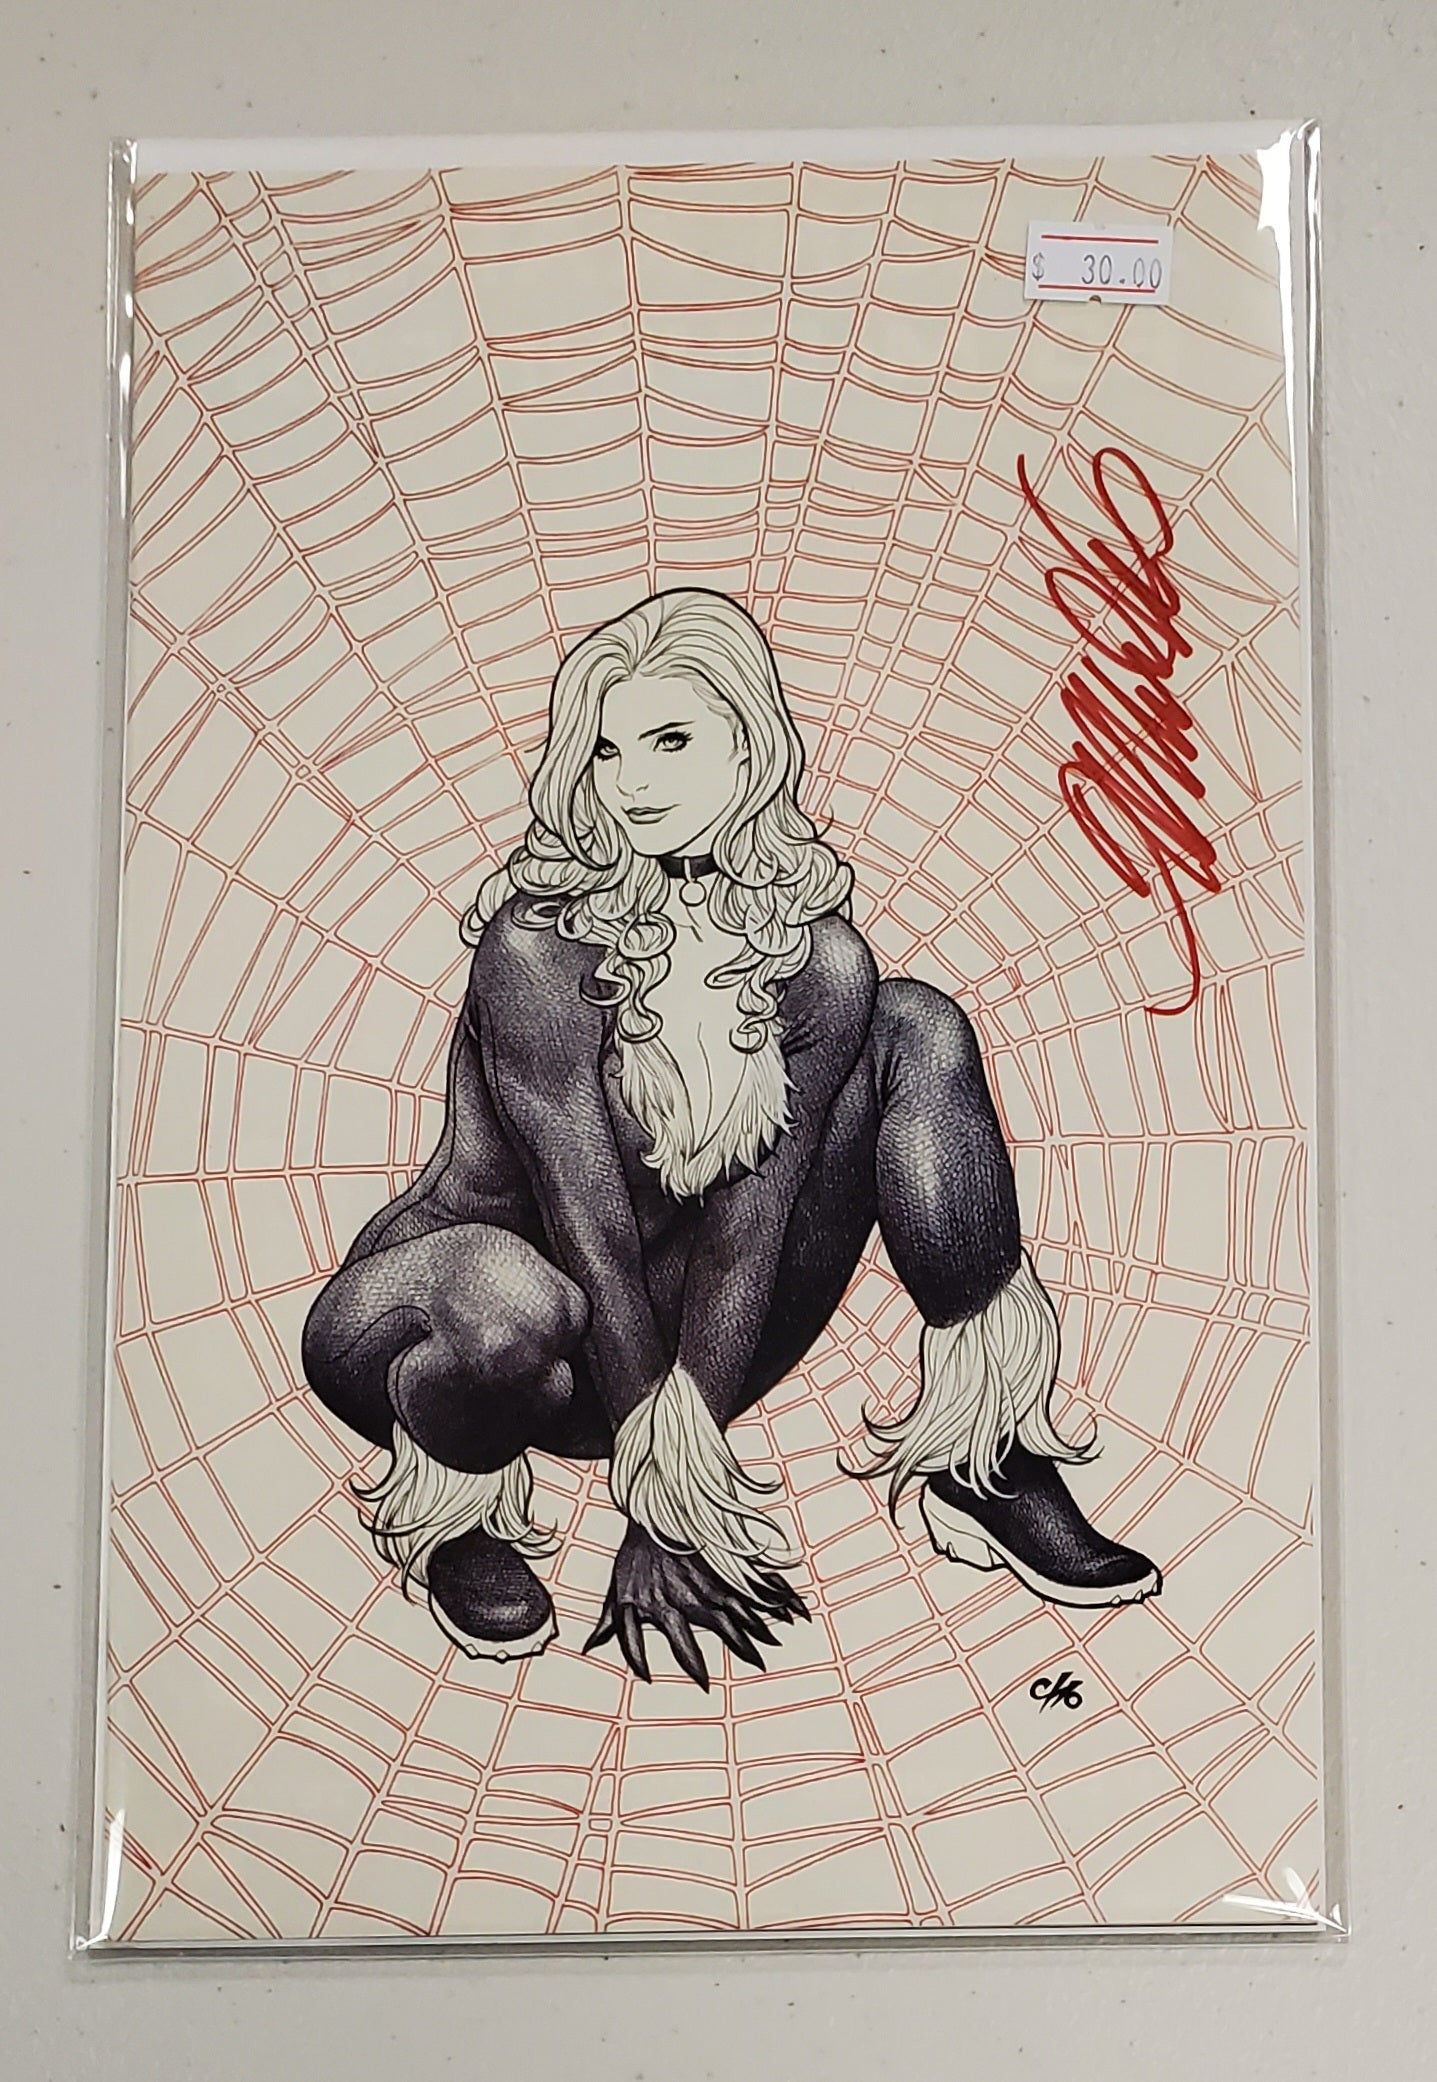 AMAZING SPIDER-MAN #799 VIRGIN VARIANT SIGNED BY FRANK CHO